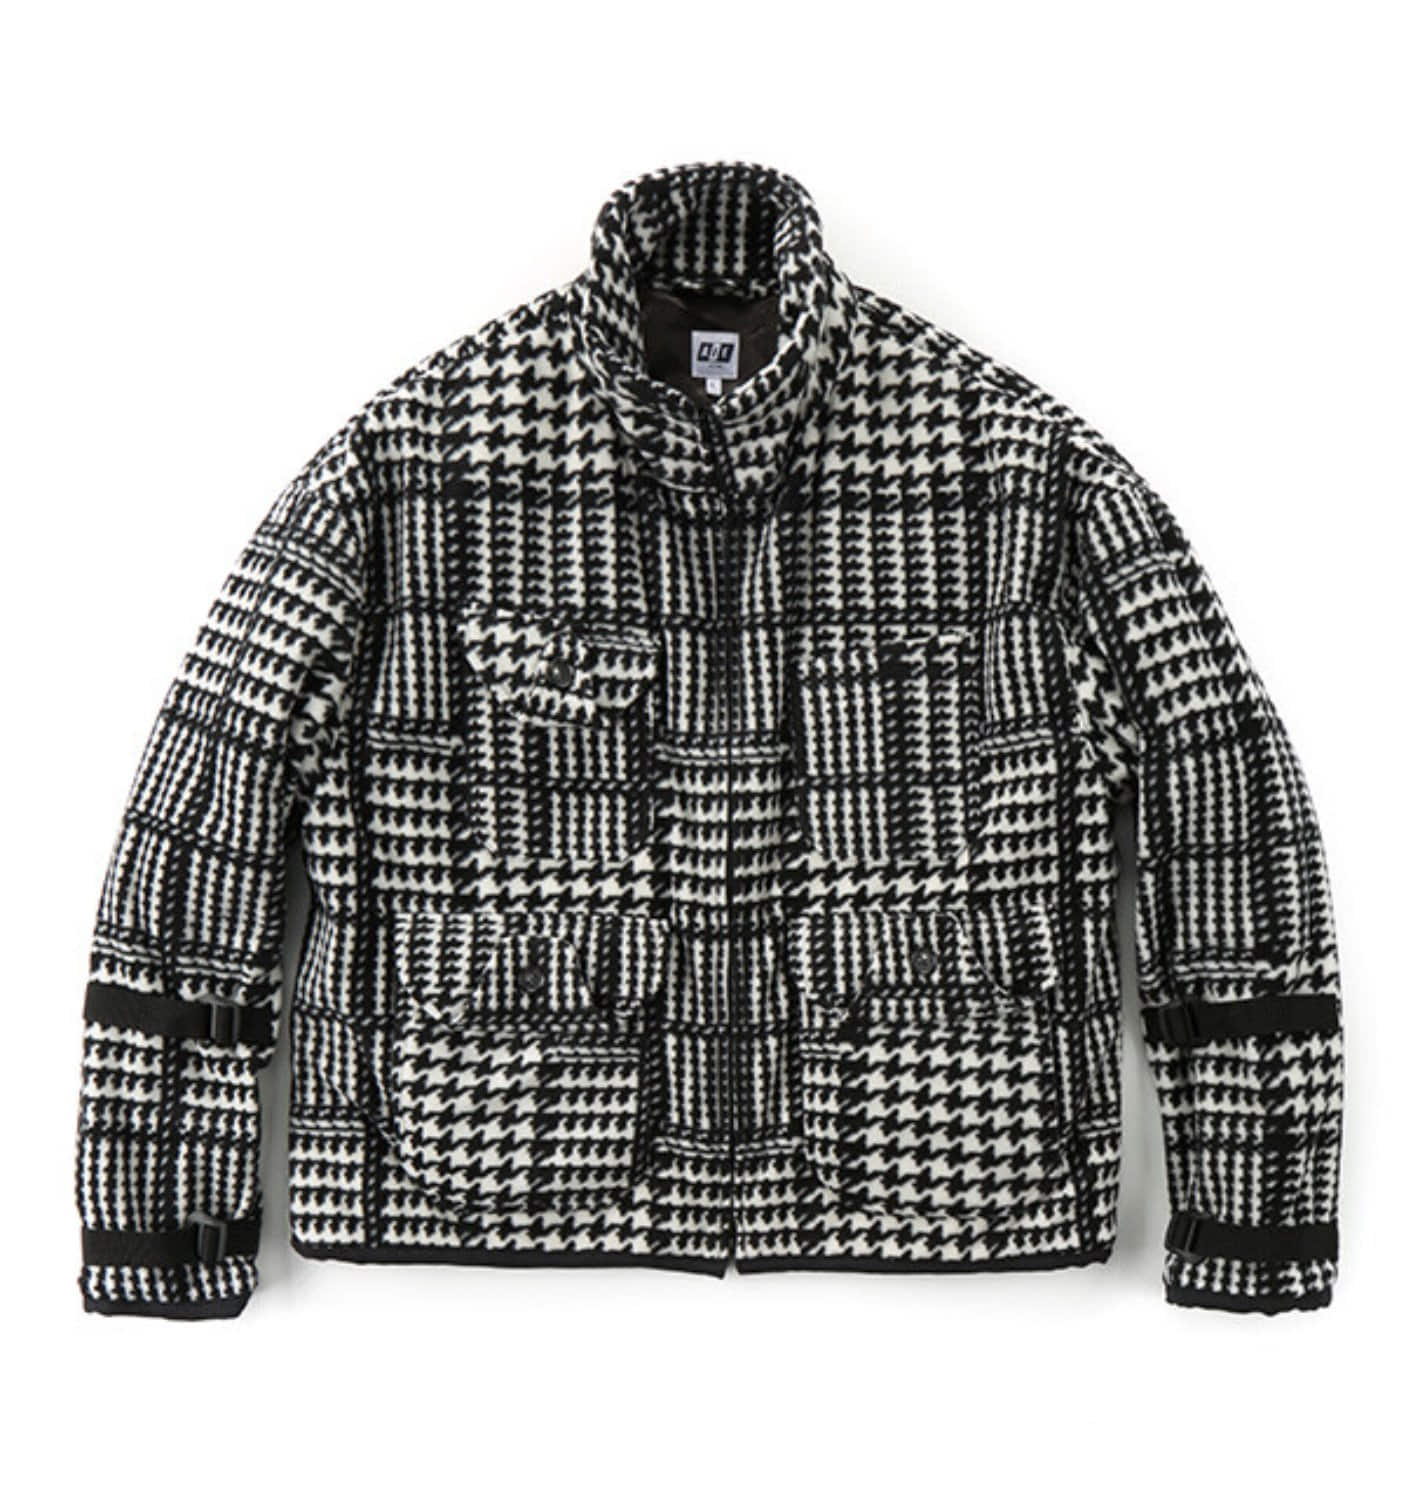 DOC JACKET BLACK/WHITE POLYESTER HOUNDSTOOTH